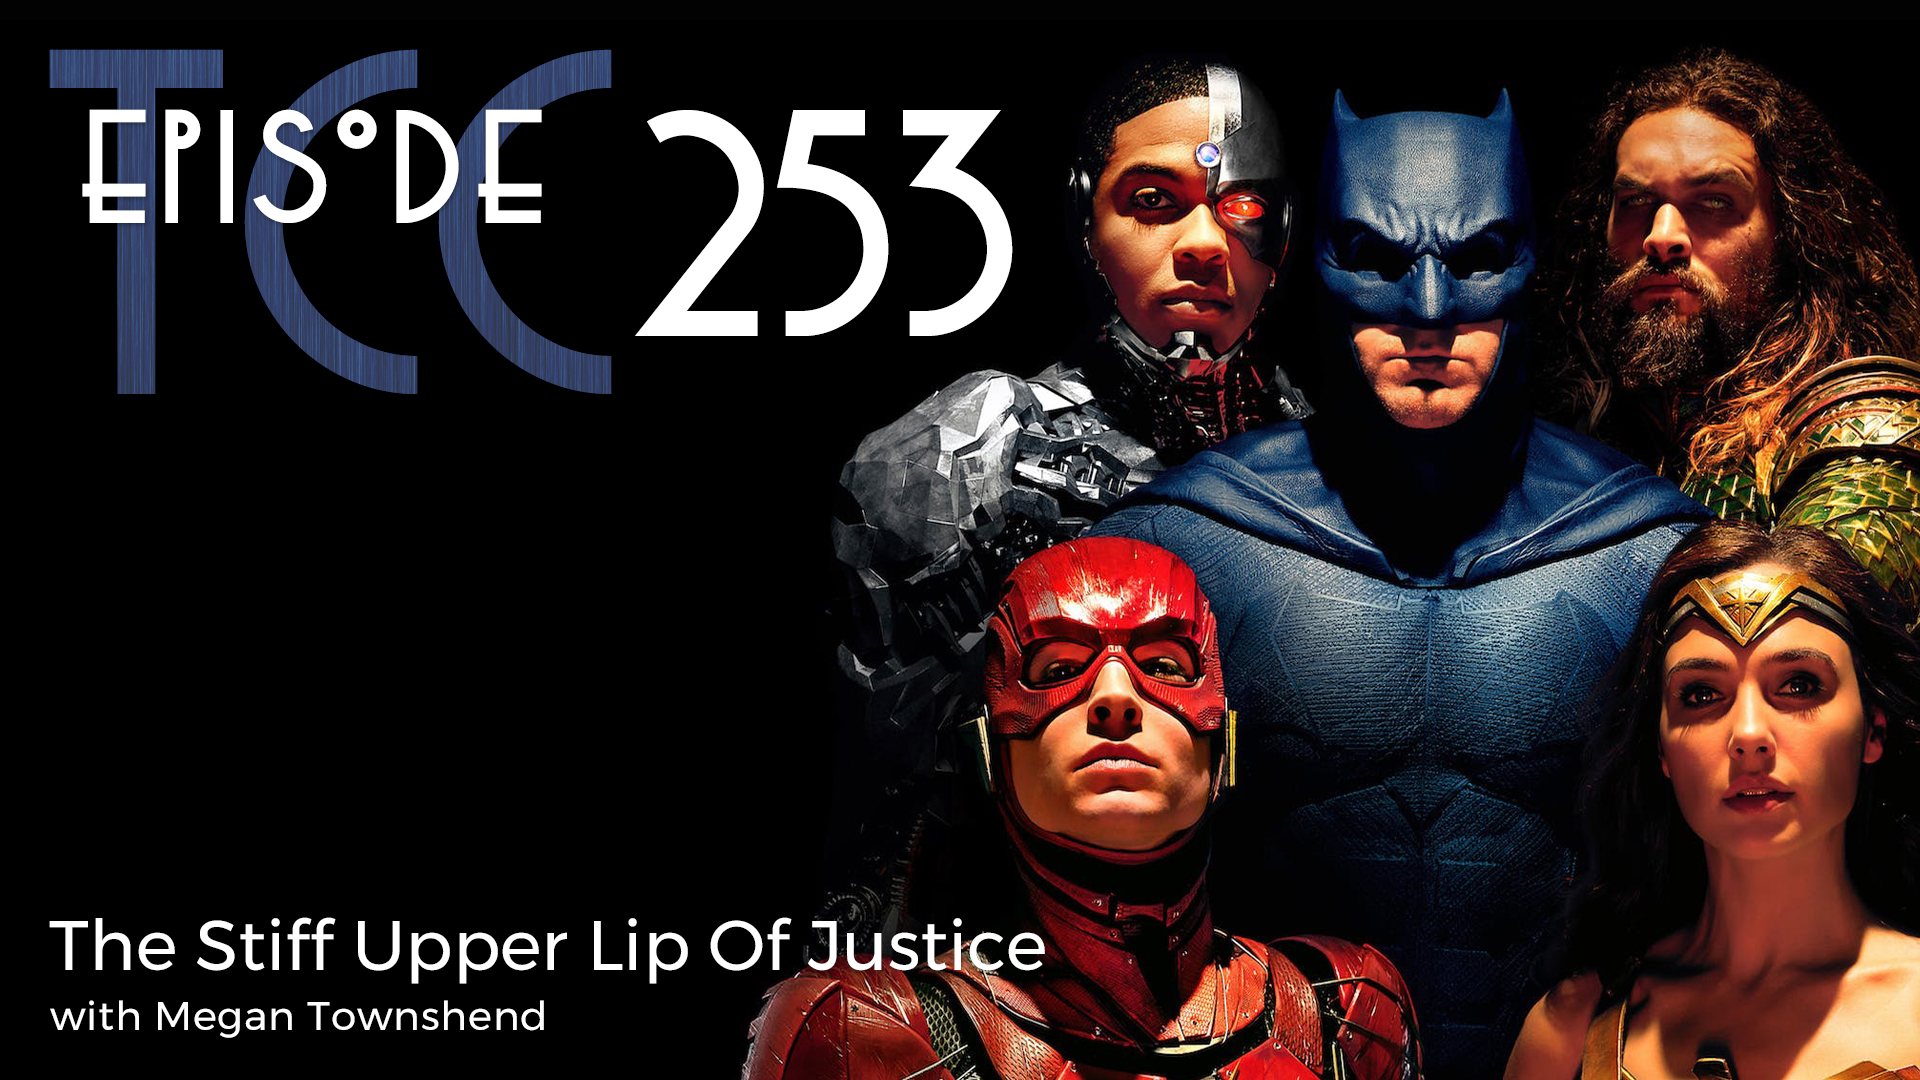 The Citadel Cafe 253: The Stiff Upper Lip Of Justice